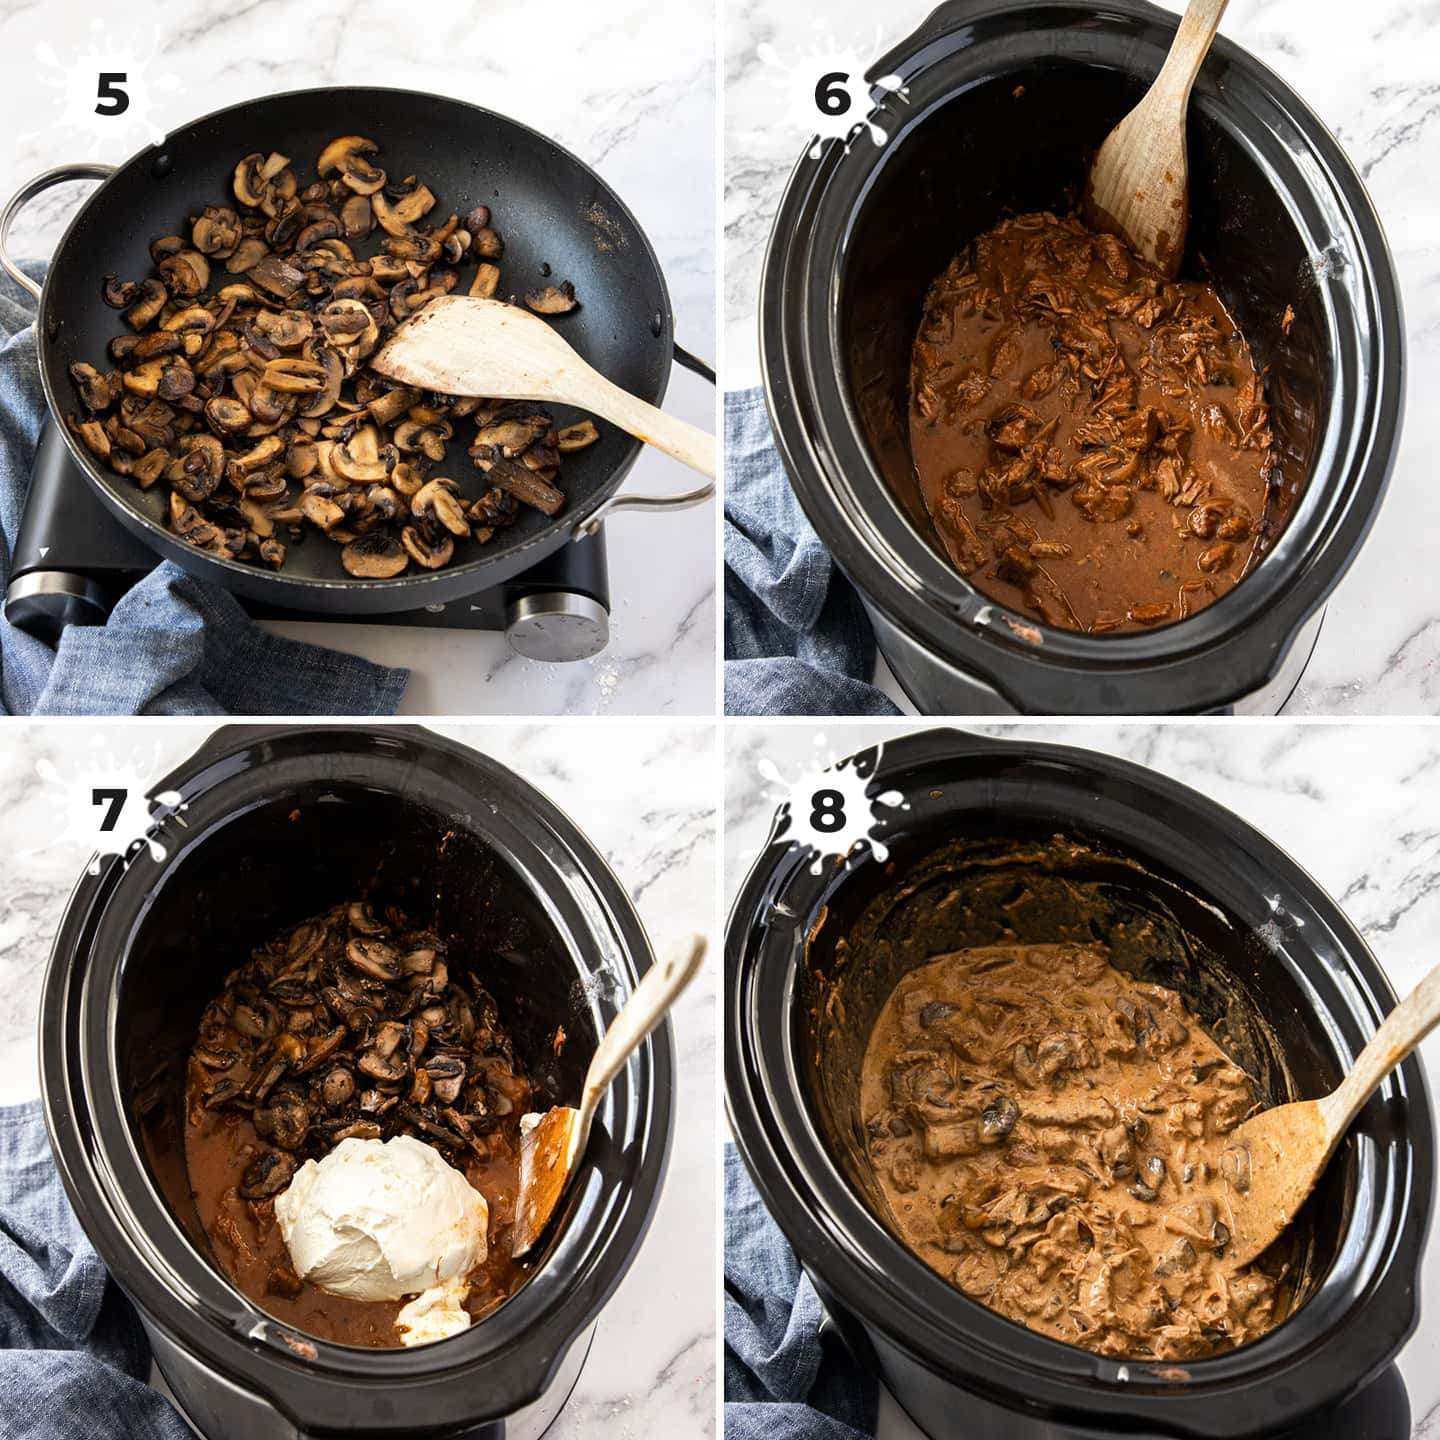 4 images of mushrooms and beef being added to a slow cooker.